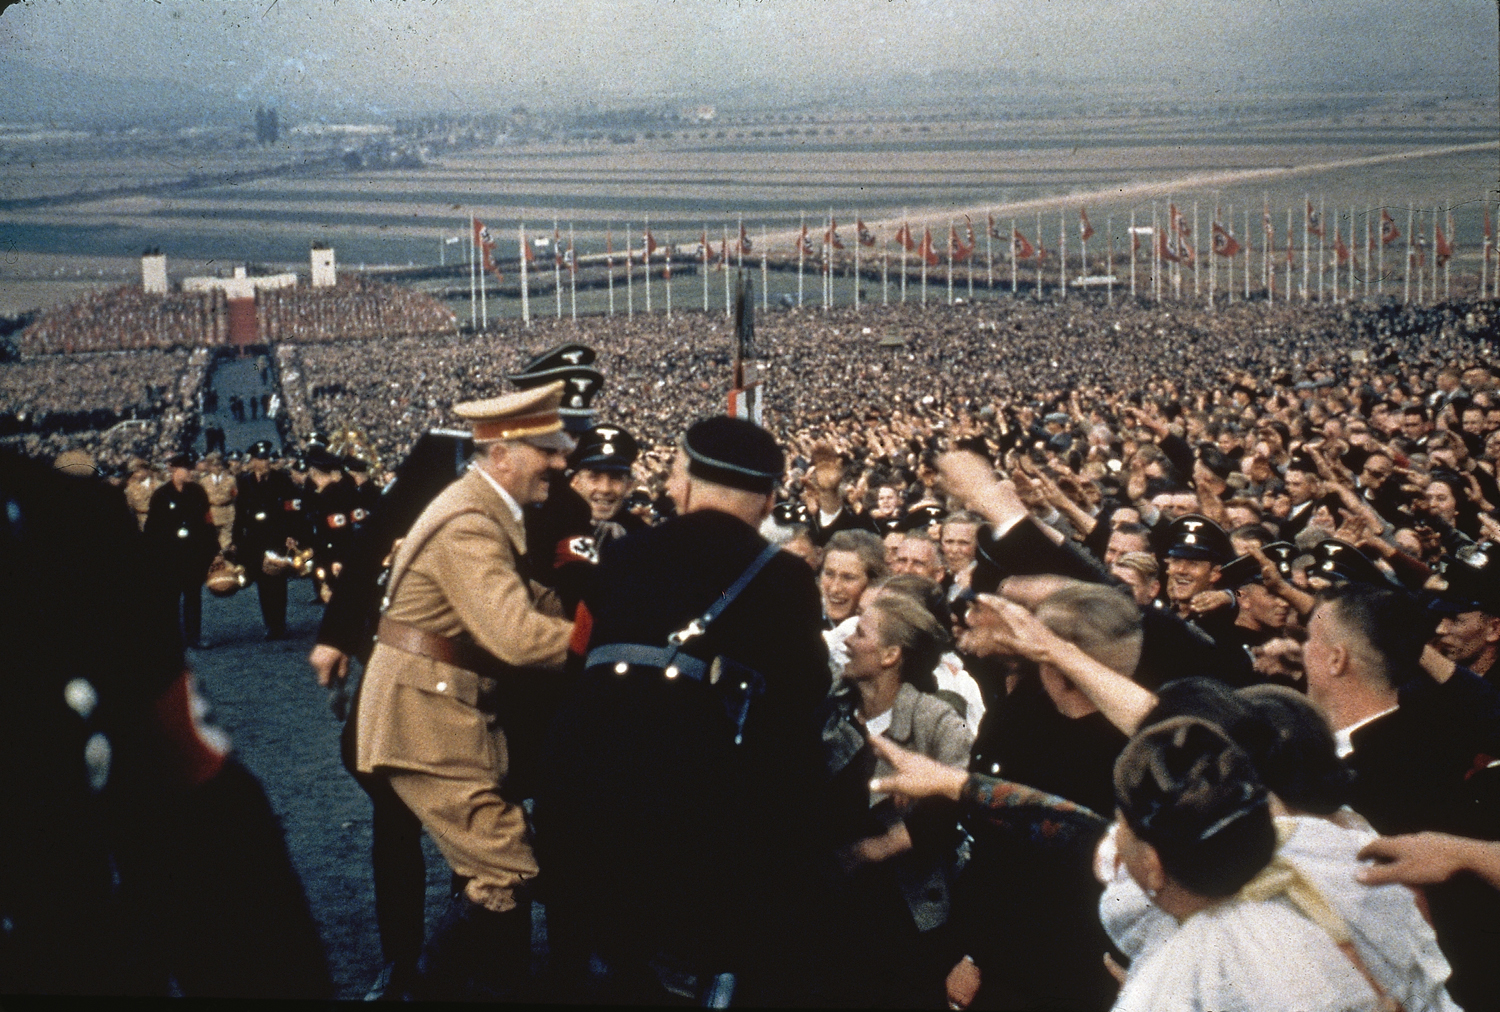 Adolf Hitler greets the cheering throng at a rally in 1937.